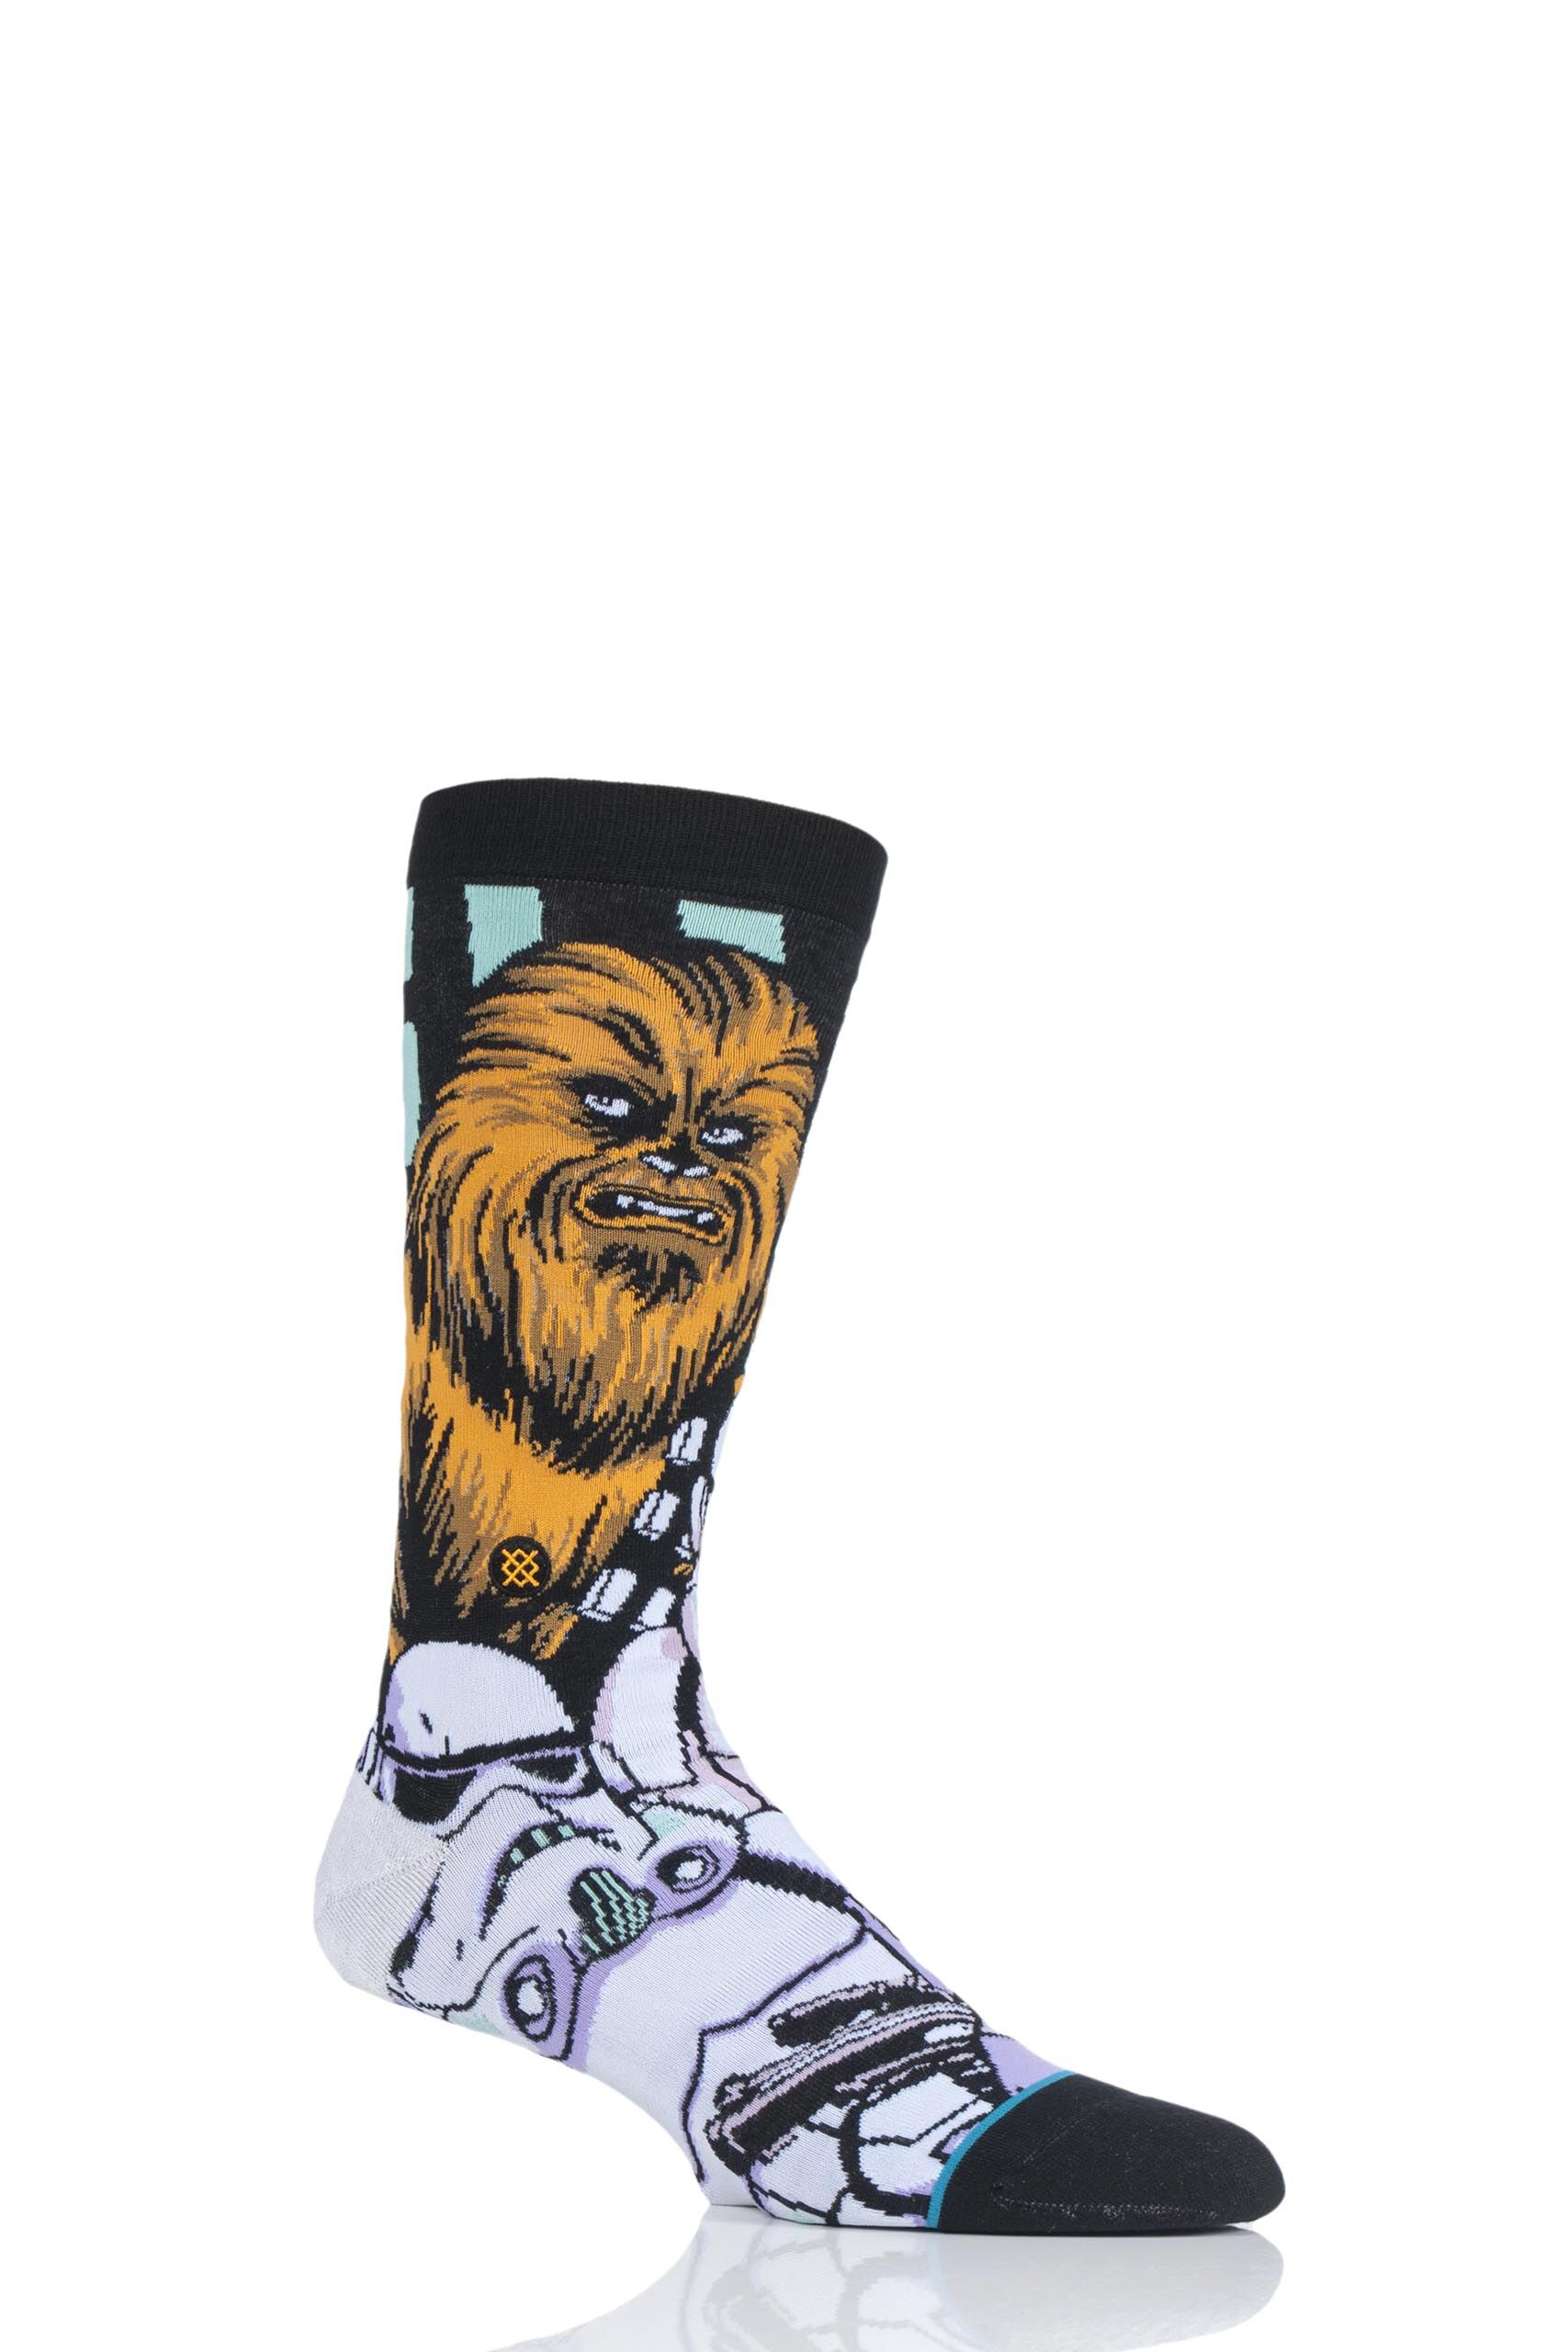 Image of 1 Pair Assorted Star Wars Warped Chewbacca Cotton Blend Socks Men's 8.5-11.5 Mens - Stance